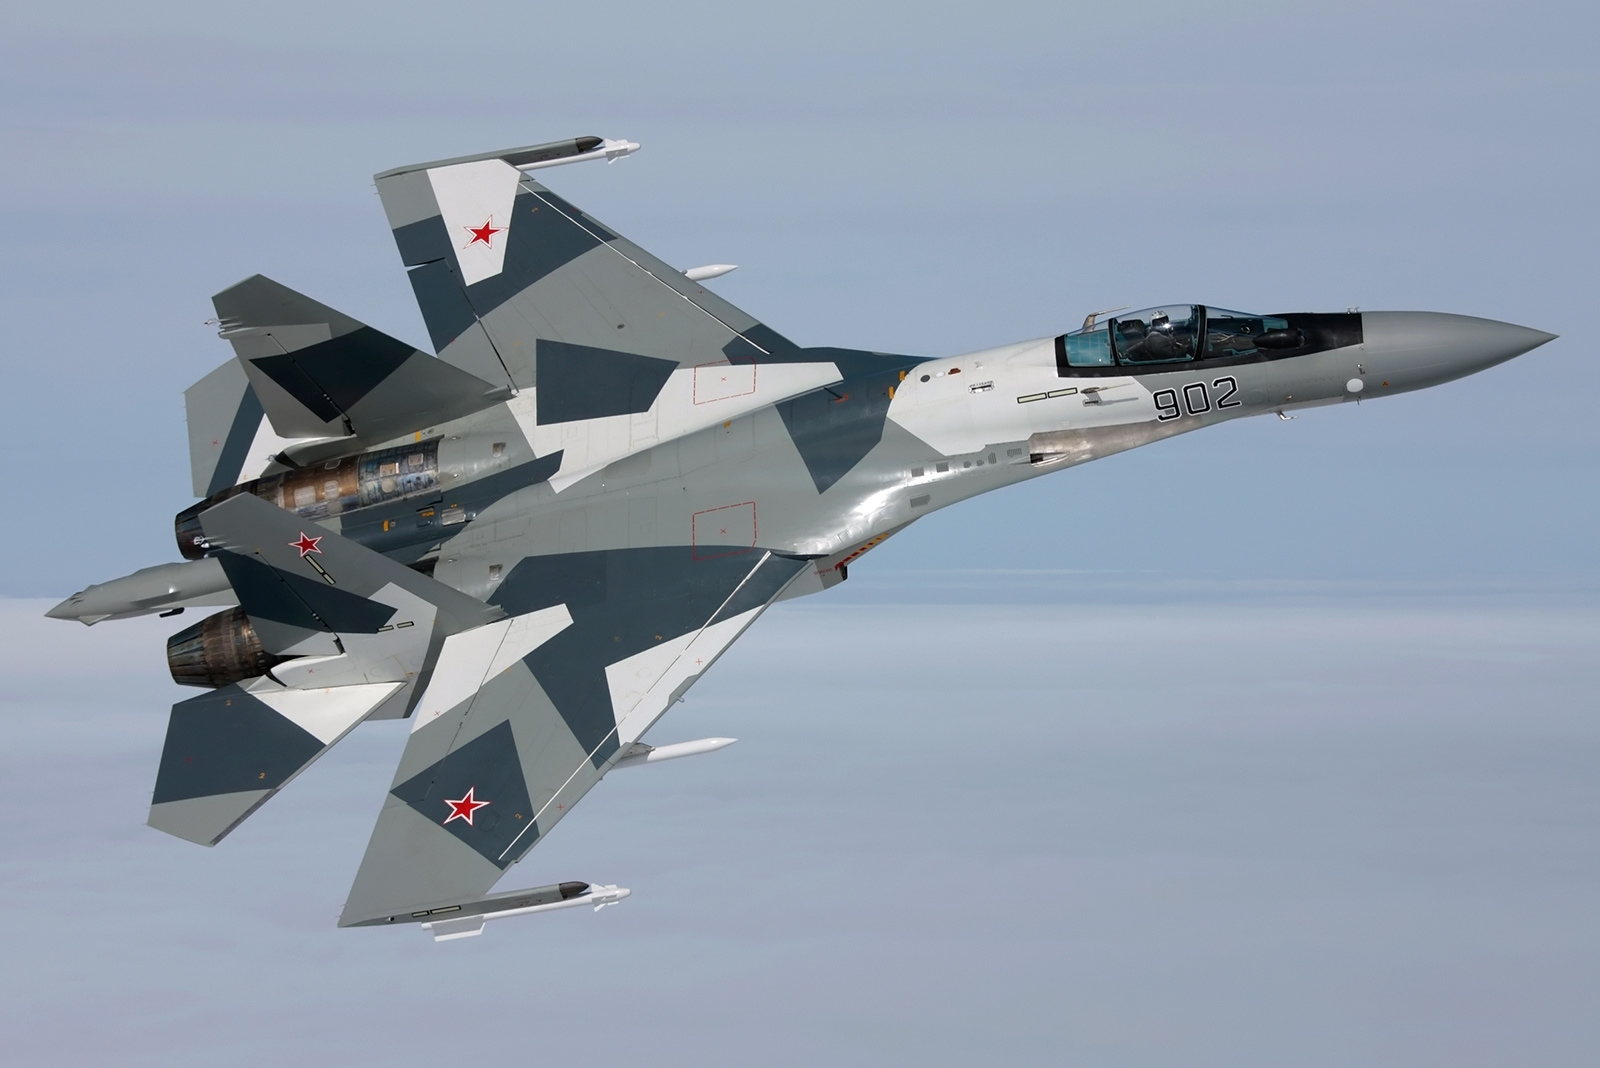 Sukhoi Su 35 While On Maneuvering Flying Above The Sky This Jet Fighter Coming From Russian Air Force Grey Based Paint Looks Amazing Blending